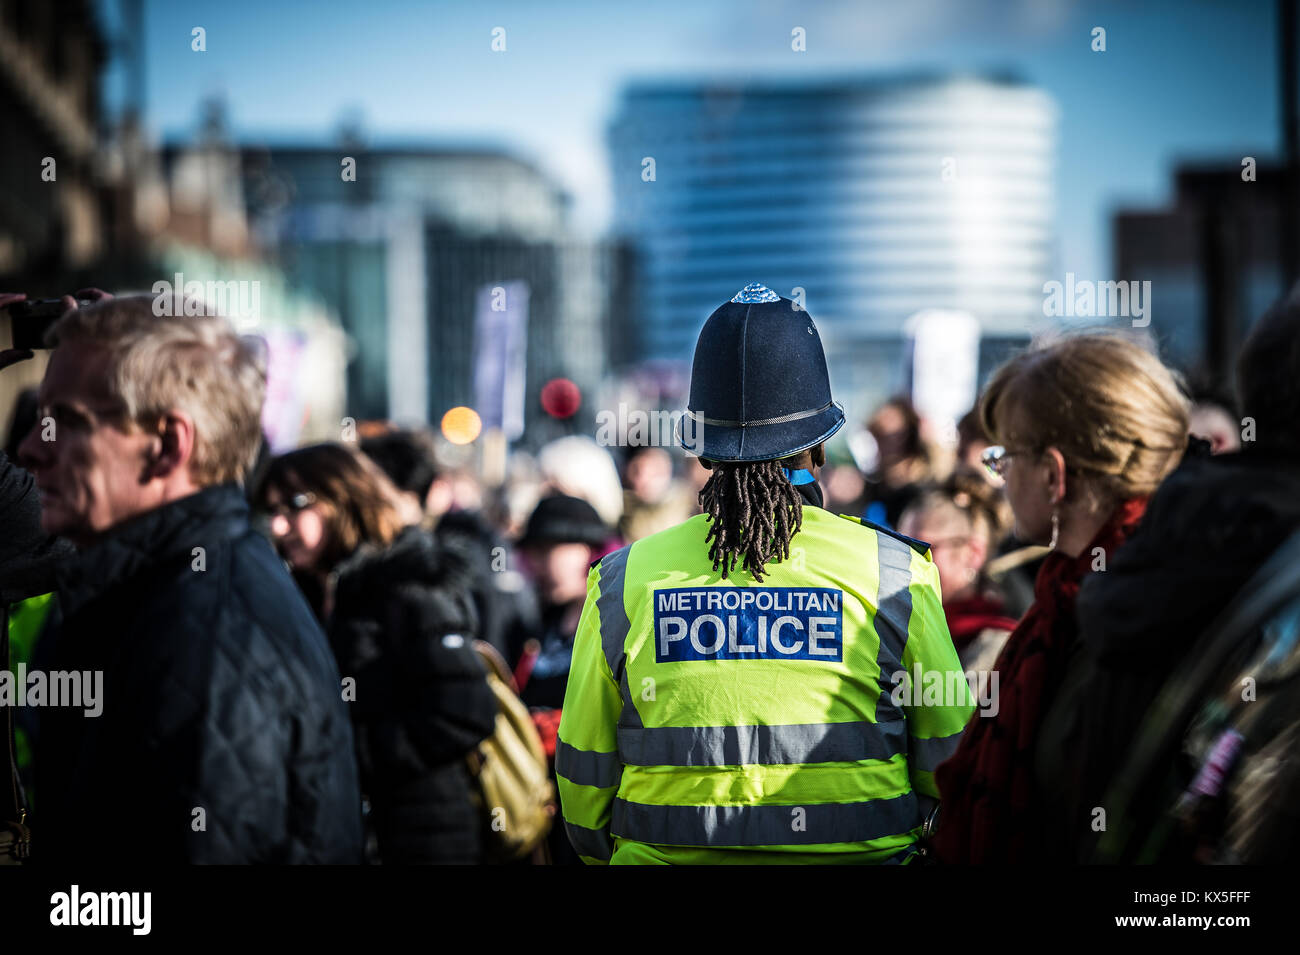 Metropolitan Police Officer on duty during a protest march in London - Stock Image